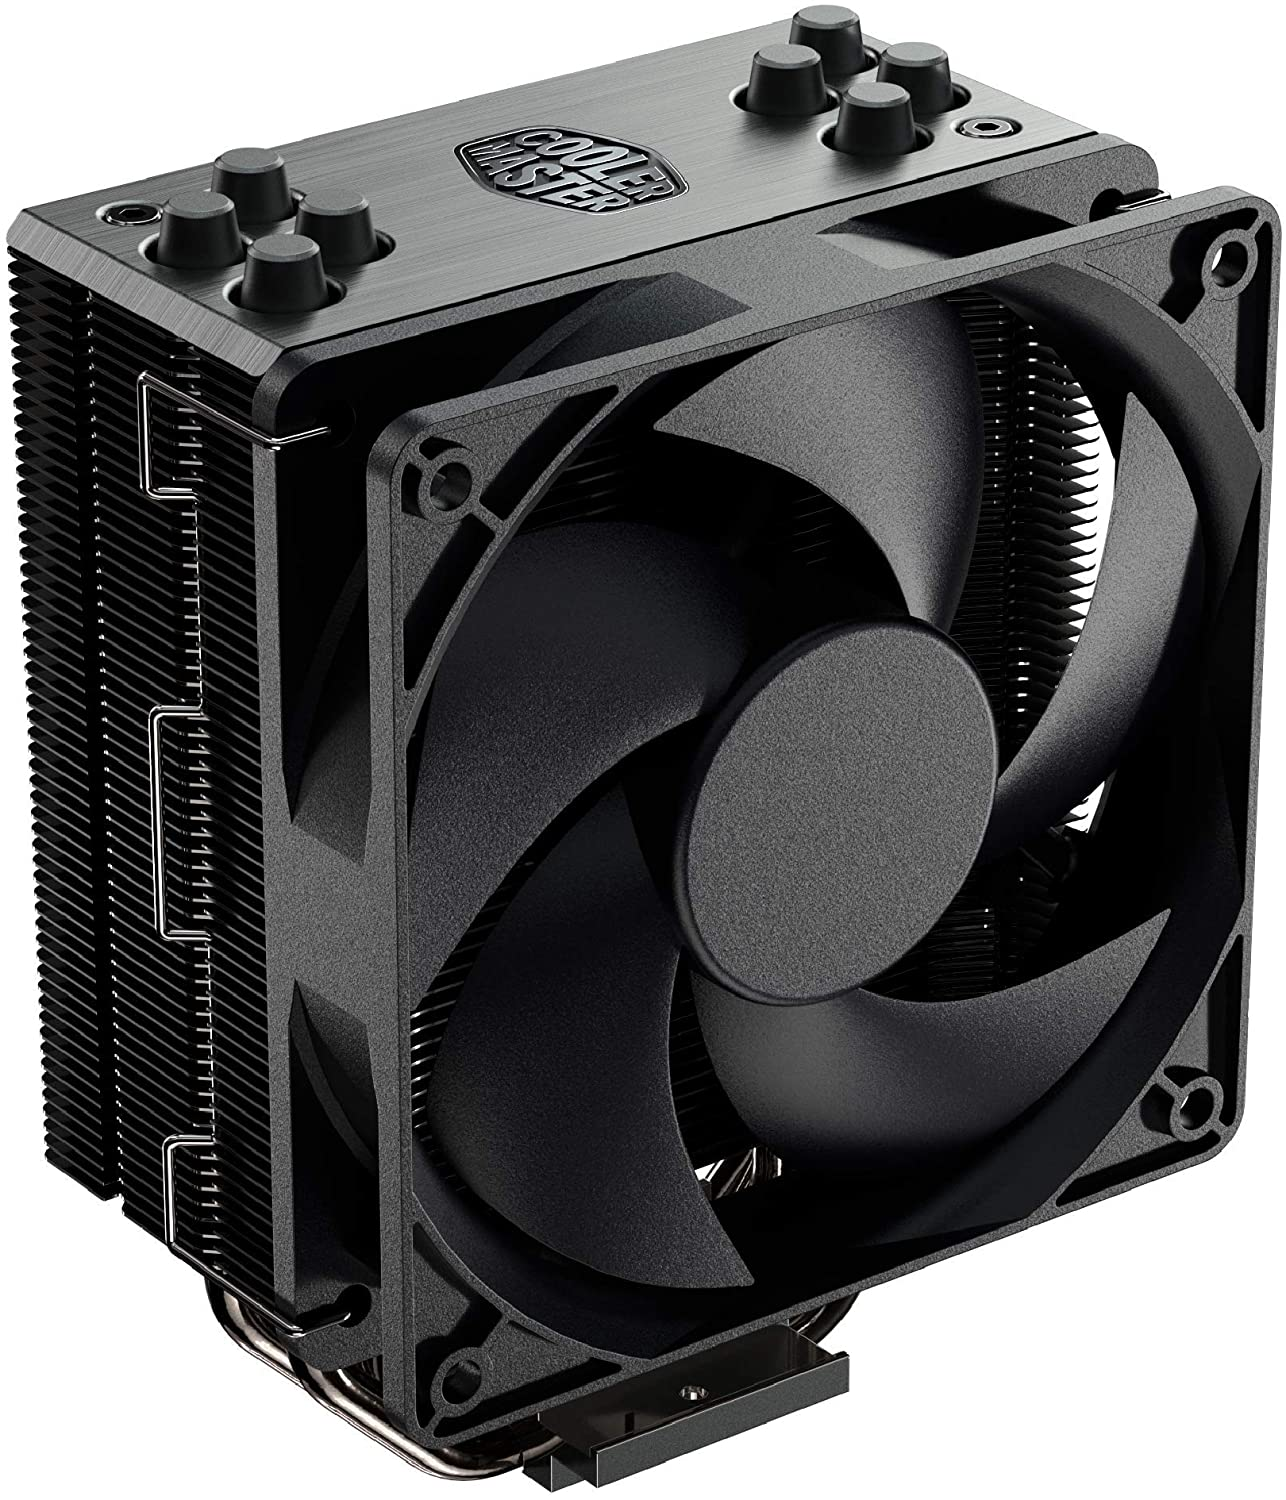 Cooler Master Hyper 212 Black Edition CPU Air Cooler w/ Silencio FP120 120mm Fan, 4 Continuous Direct Contact 2.0 Heatpipes, Anodized Gun-Metal Black, Brushed Nickel Fins, Intel LGA1151, AMD AM4/Ryzen